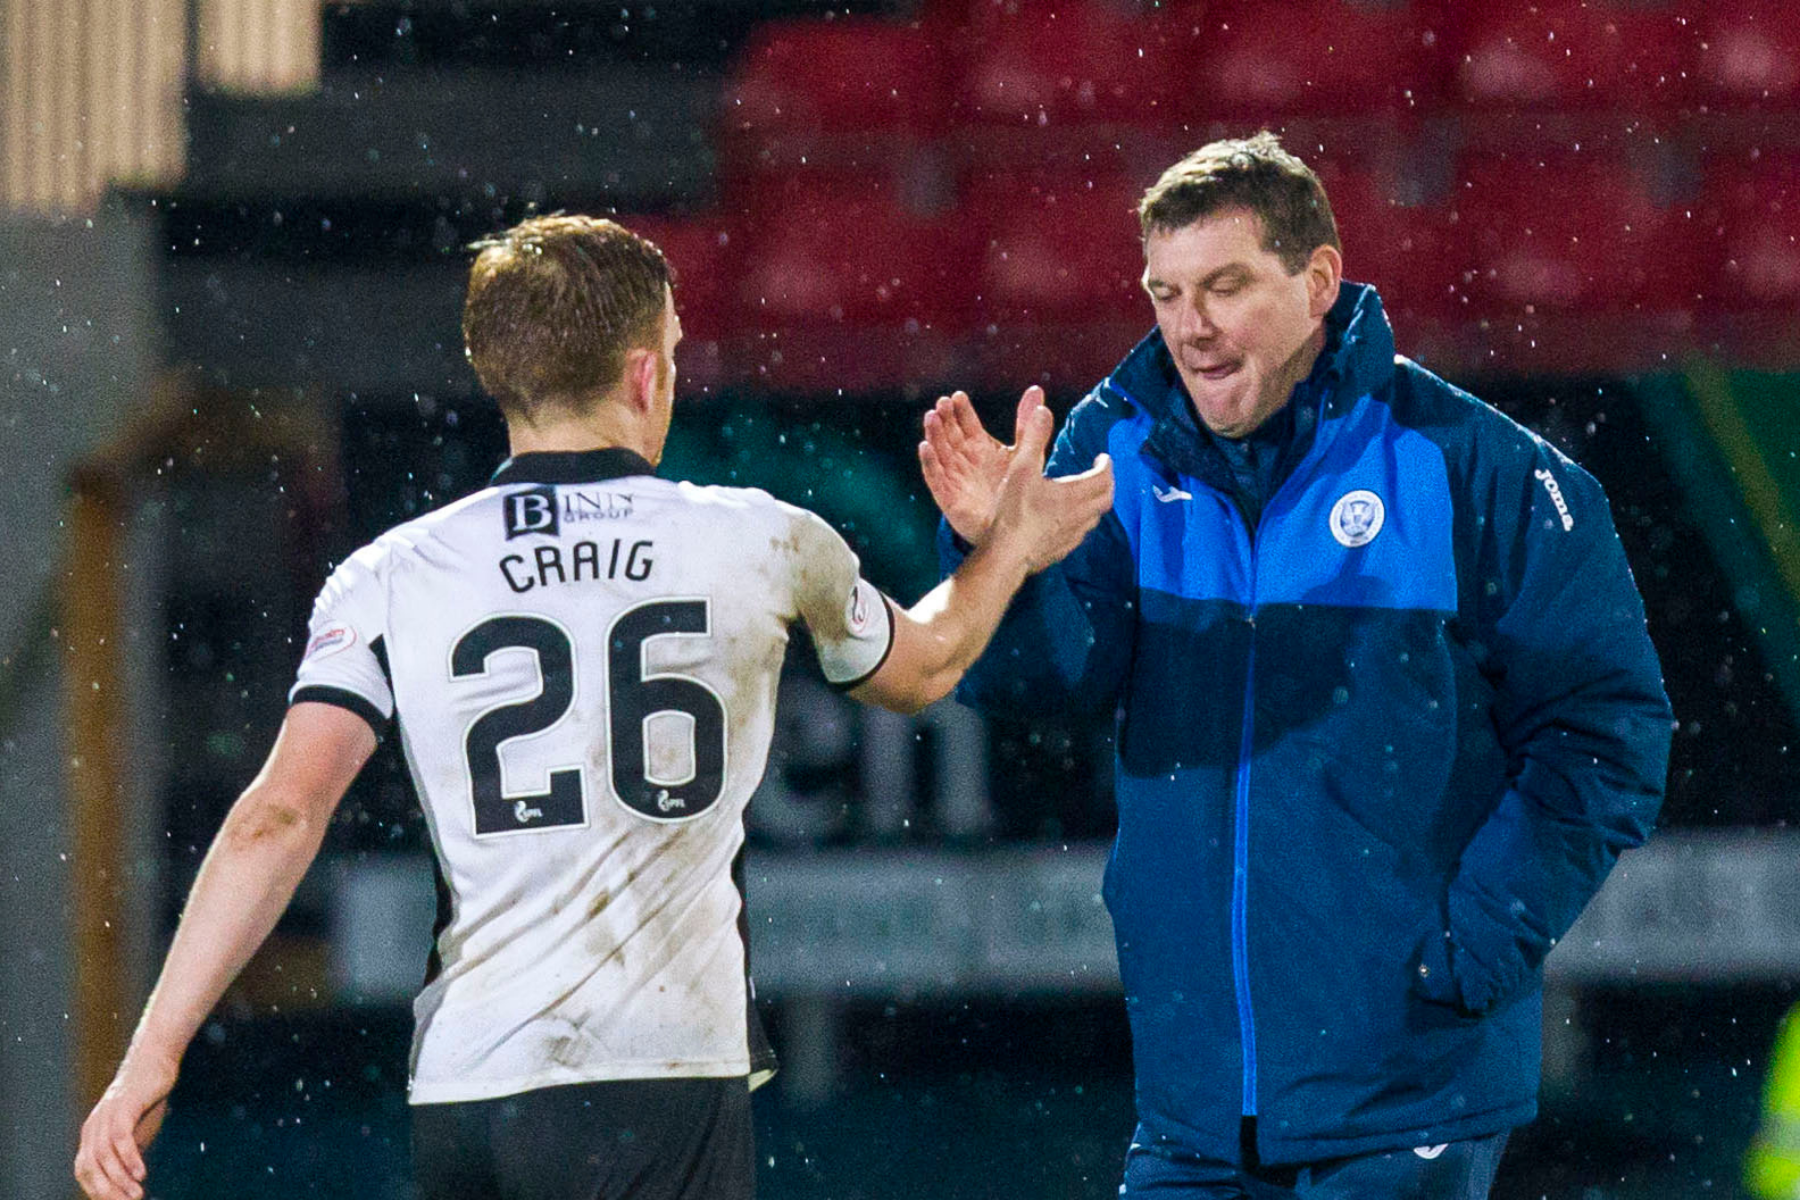 Liam Craig on the 'underestimated' Tommy Wright St Johnstone era and how Livingston may follow suit